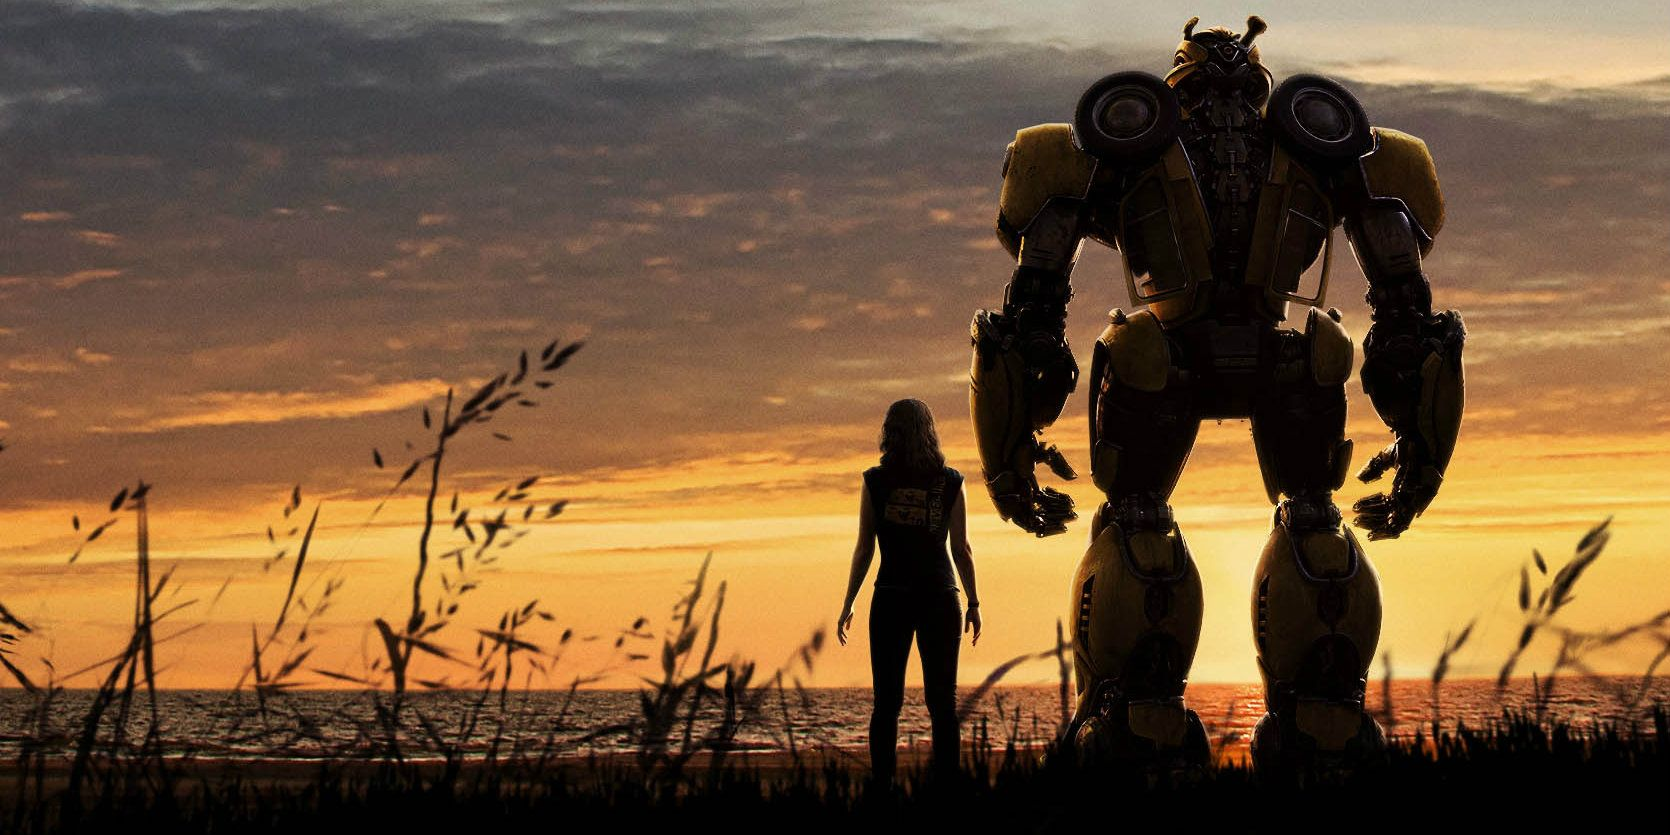 2018 Movie Posters: Transformers Movie Spinoff Bumblebee Gets A Trailer